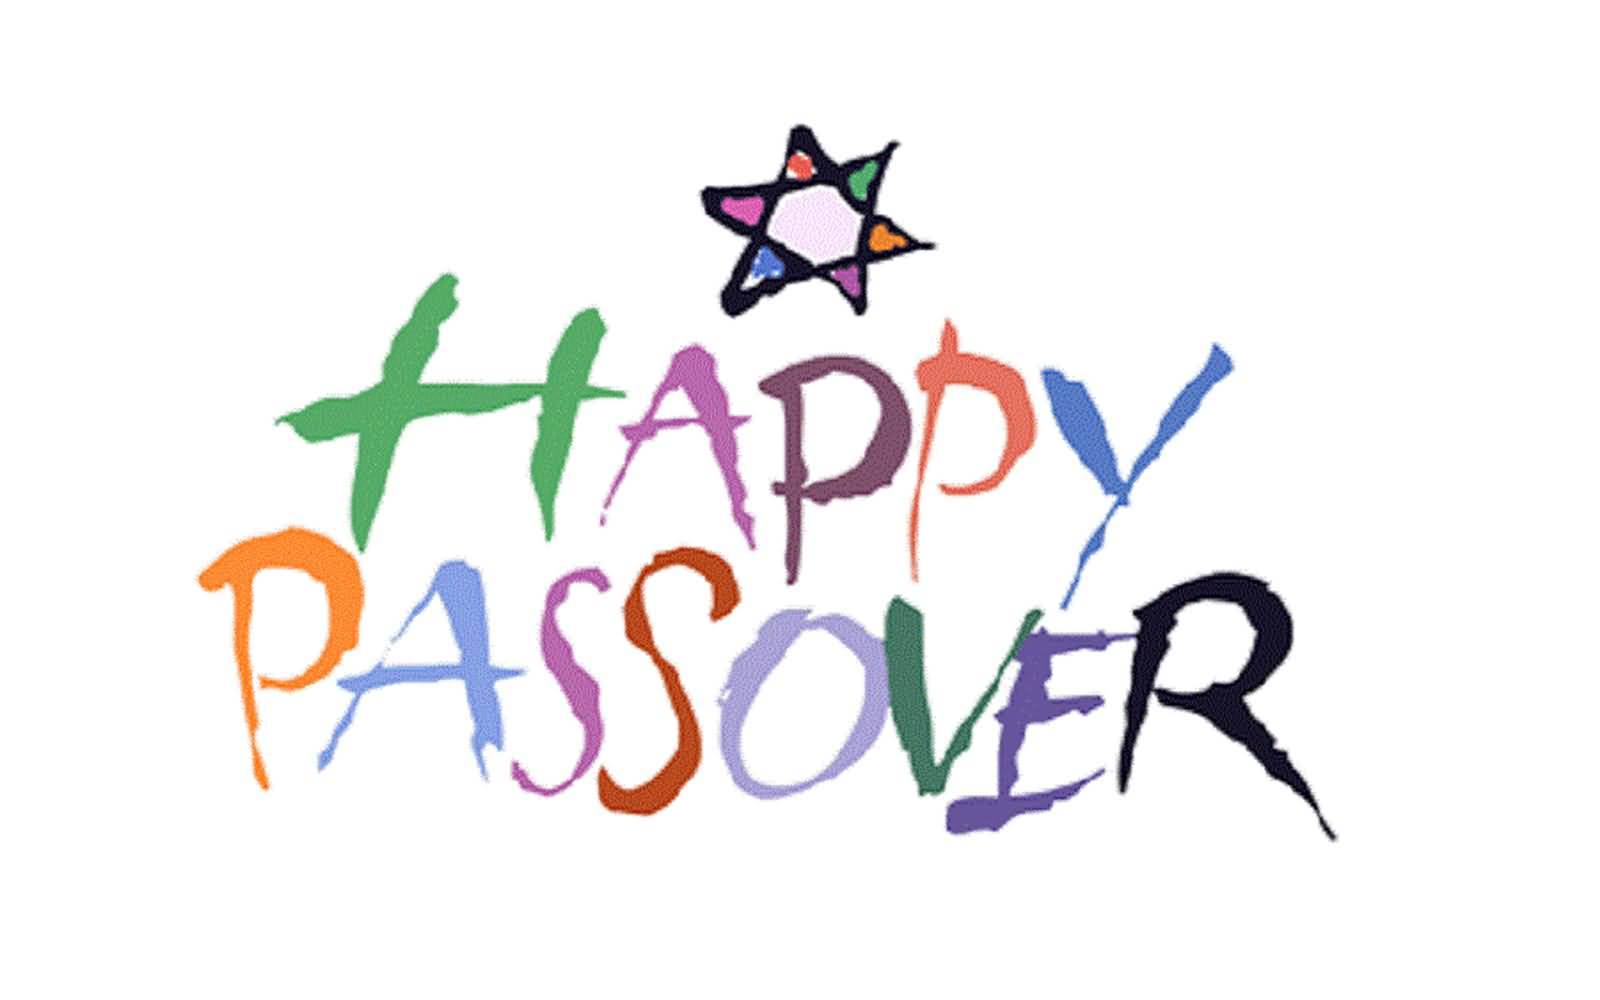 Happy passover greetings picture m4hsunfo Image collections